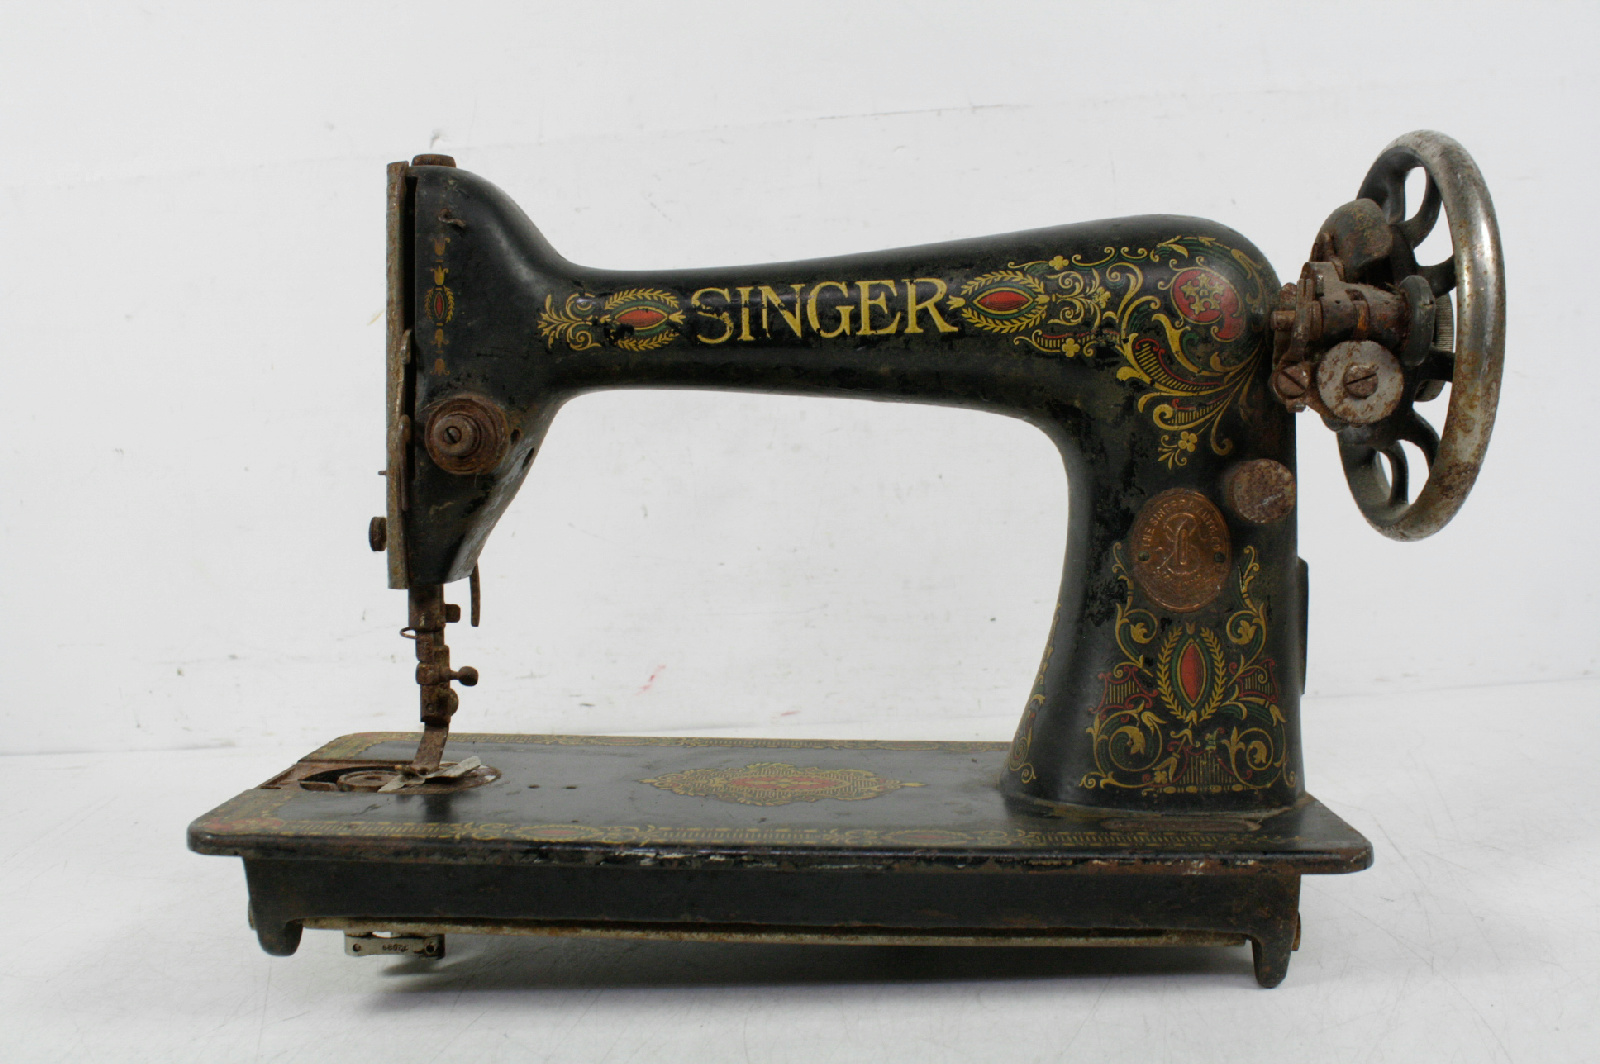 Spares For Vintage Singer Sewing Machines